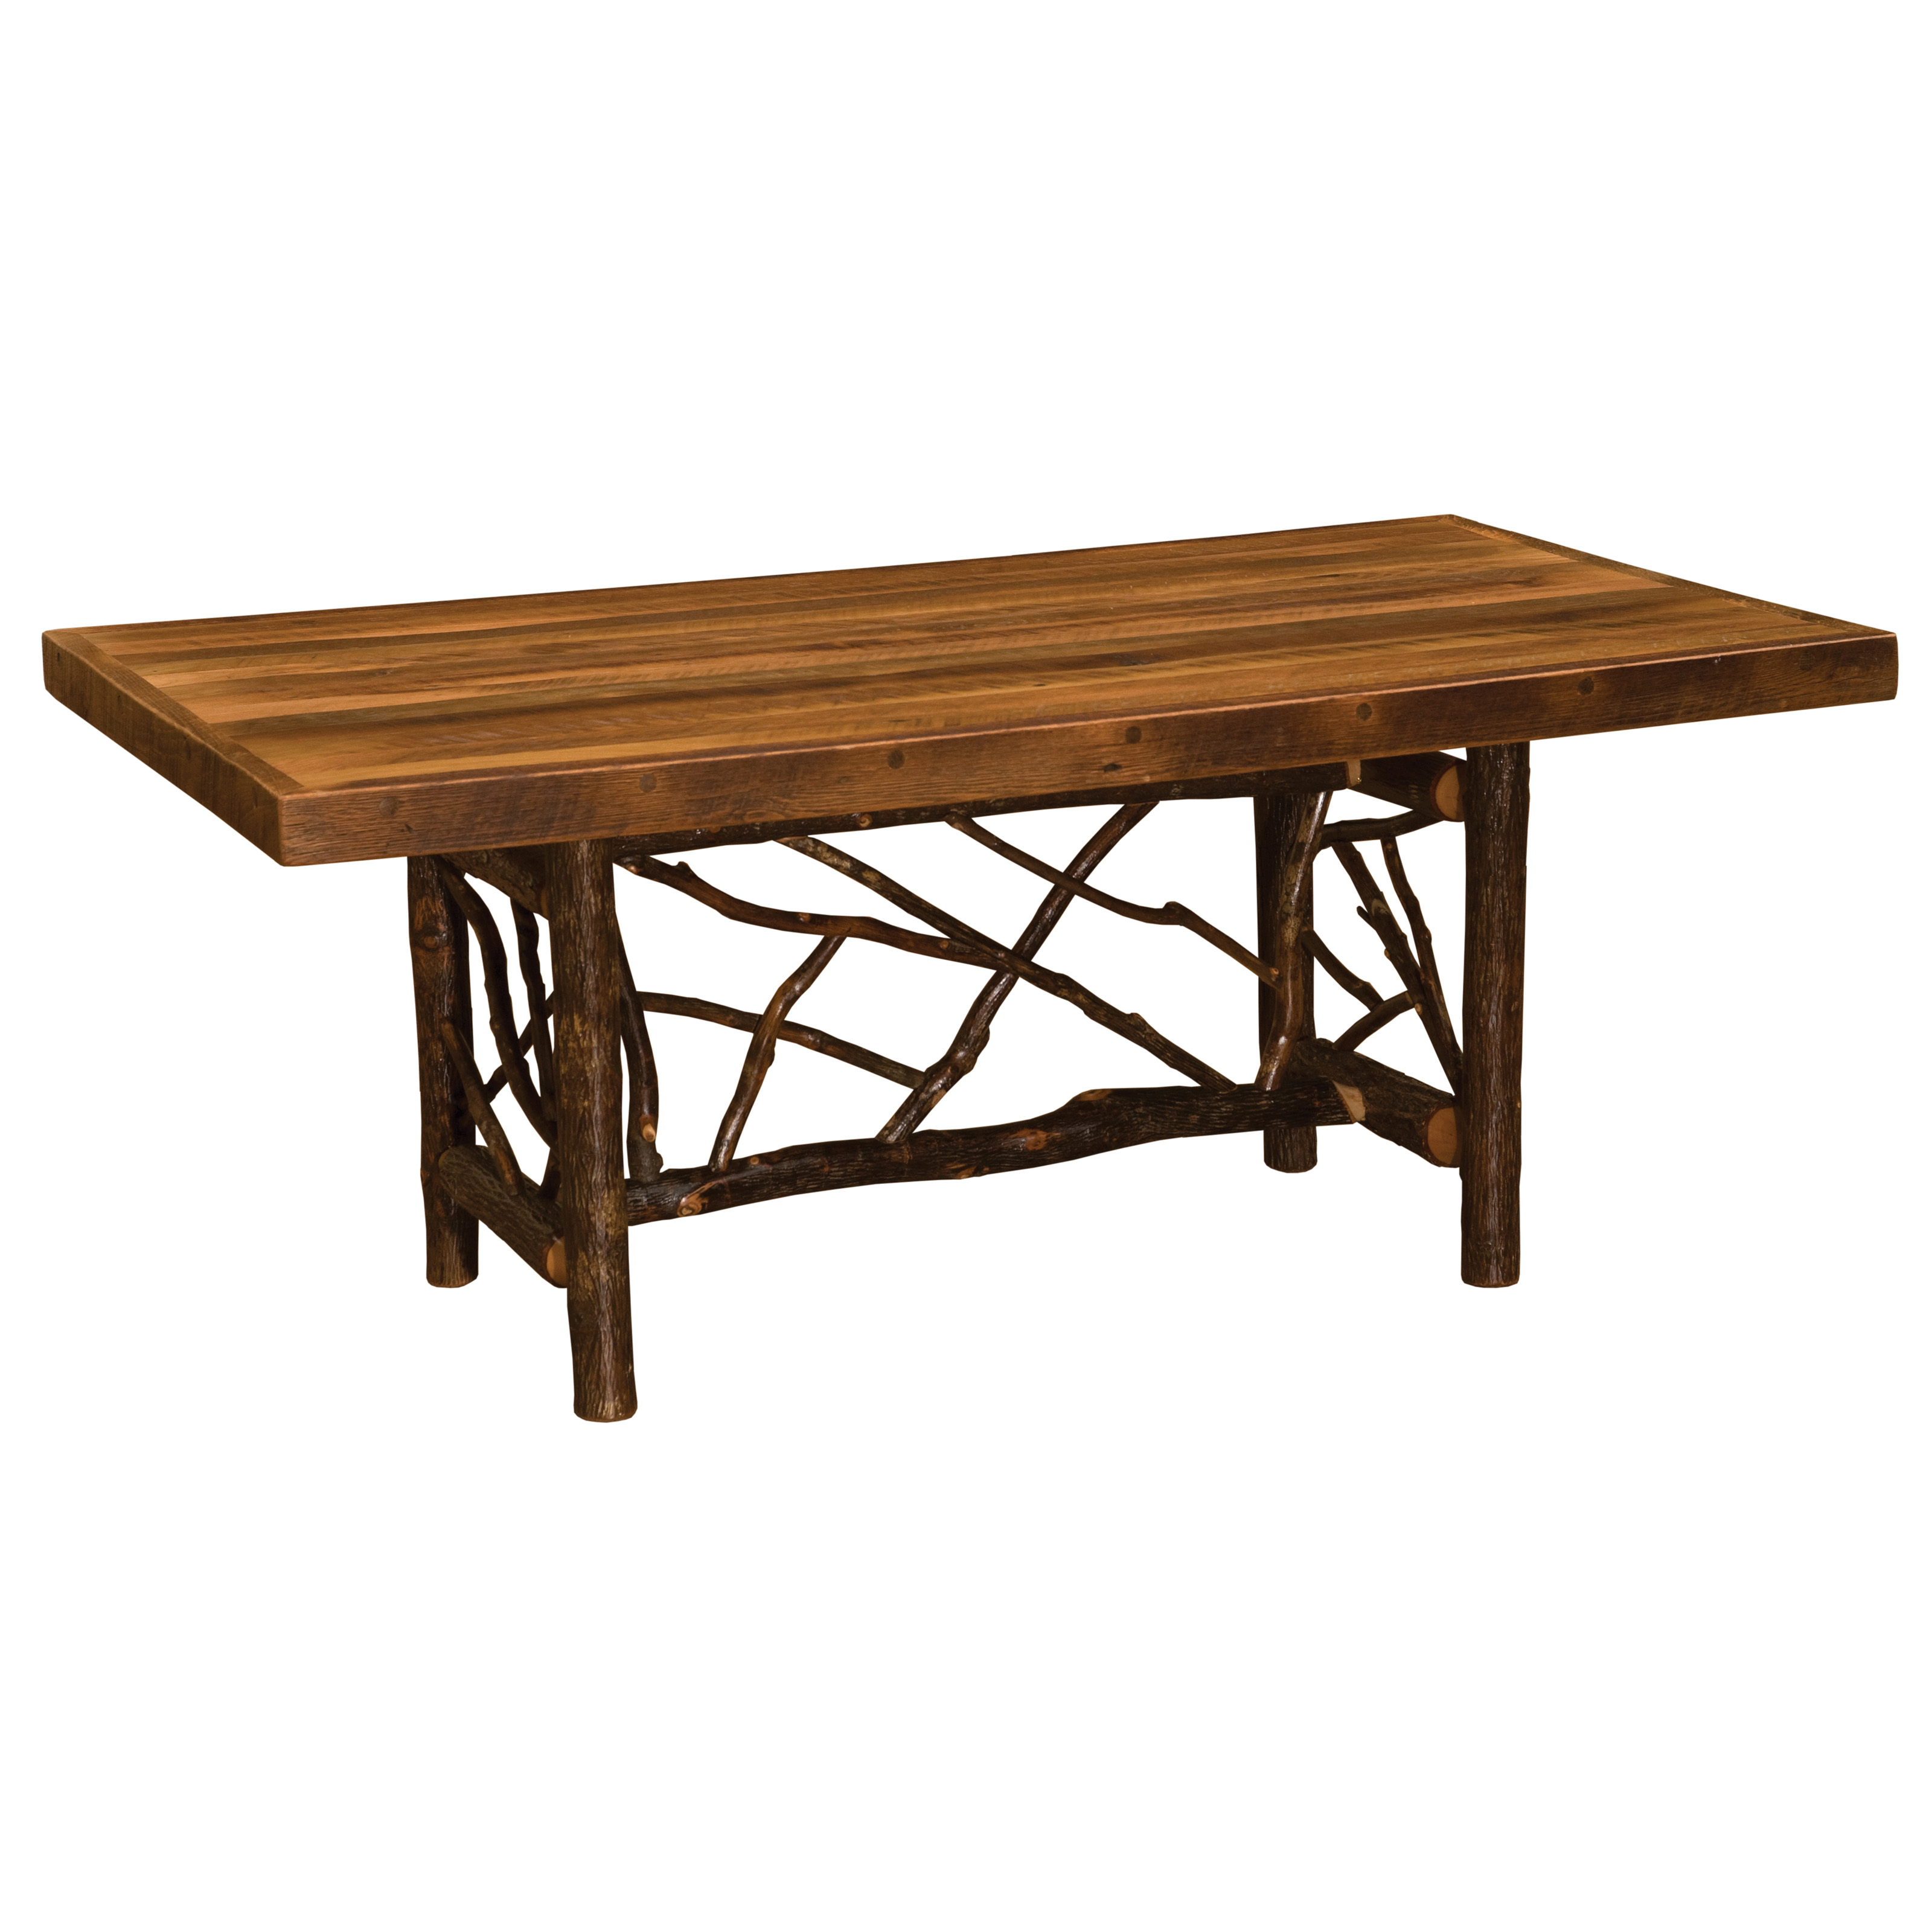 A r t furniture greenpoint oval dining table in coffee bean - A R T Furniture Greenpoint Oval Dining Table In Coffee Bean 23